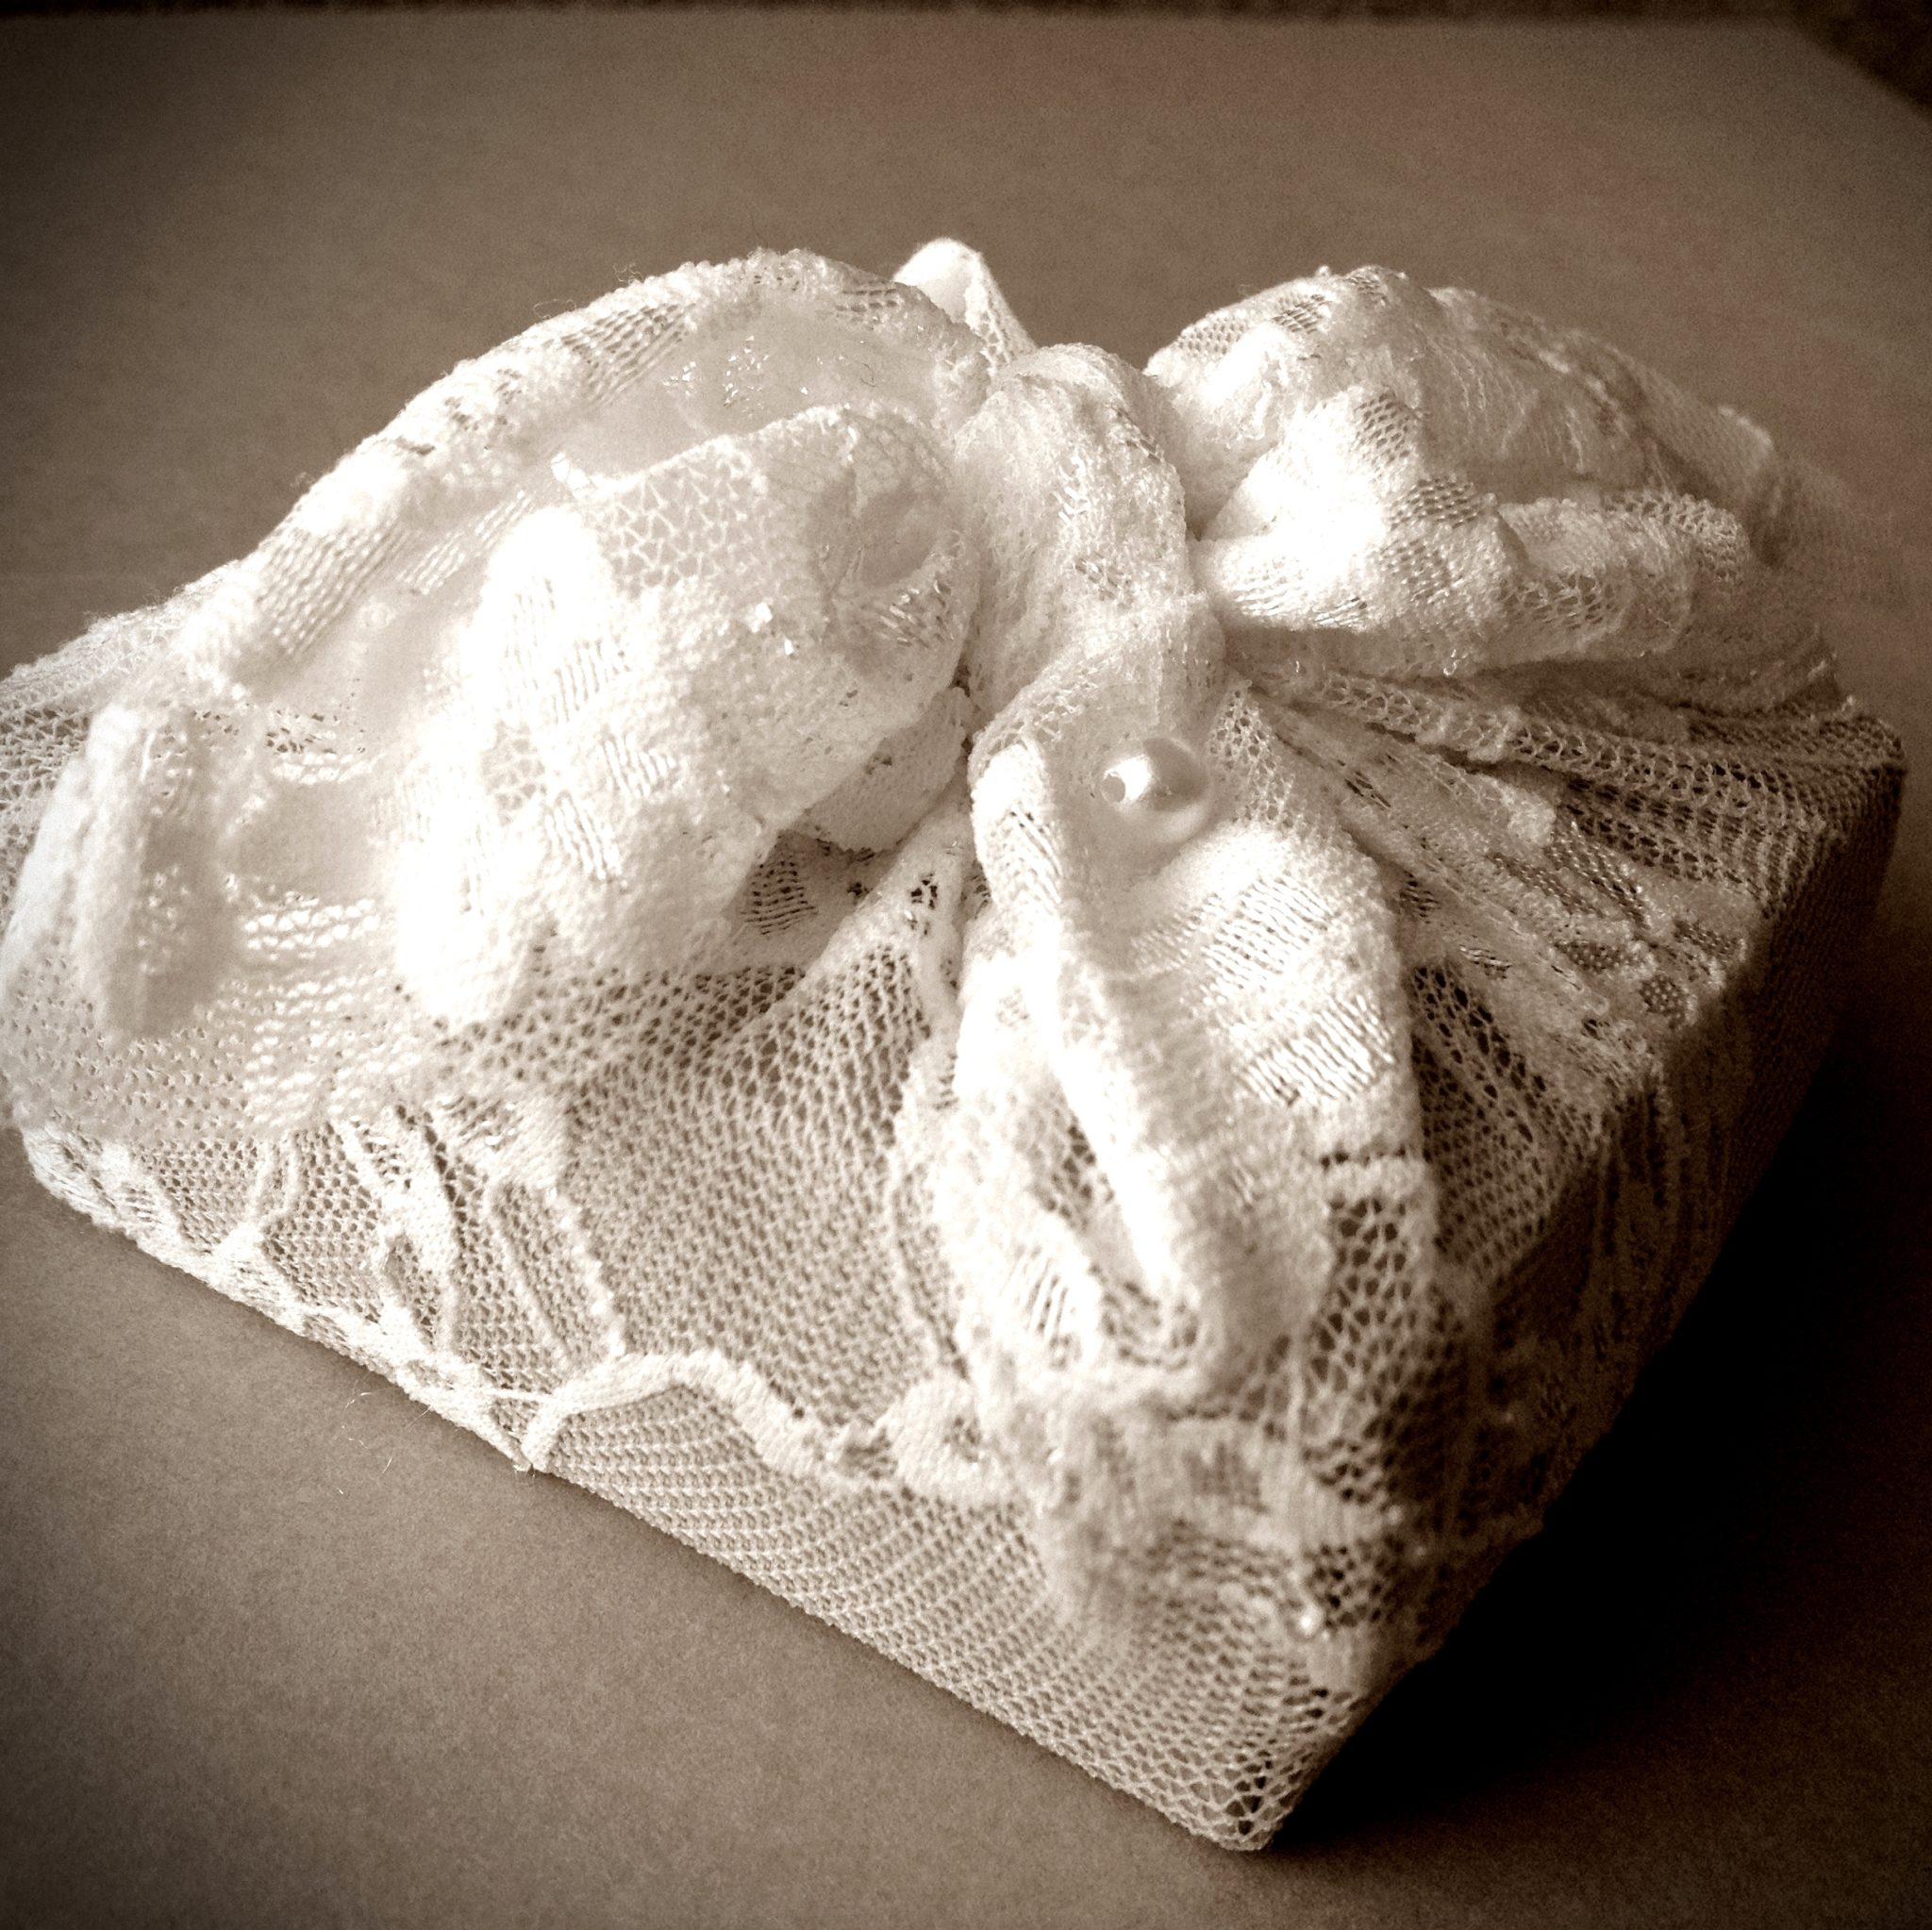 Lace And Pearls-wedding favor